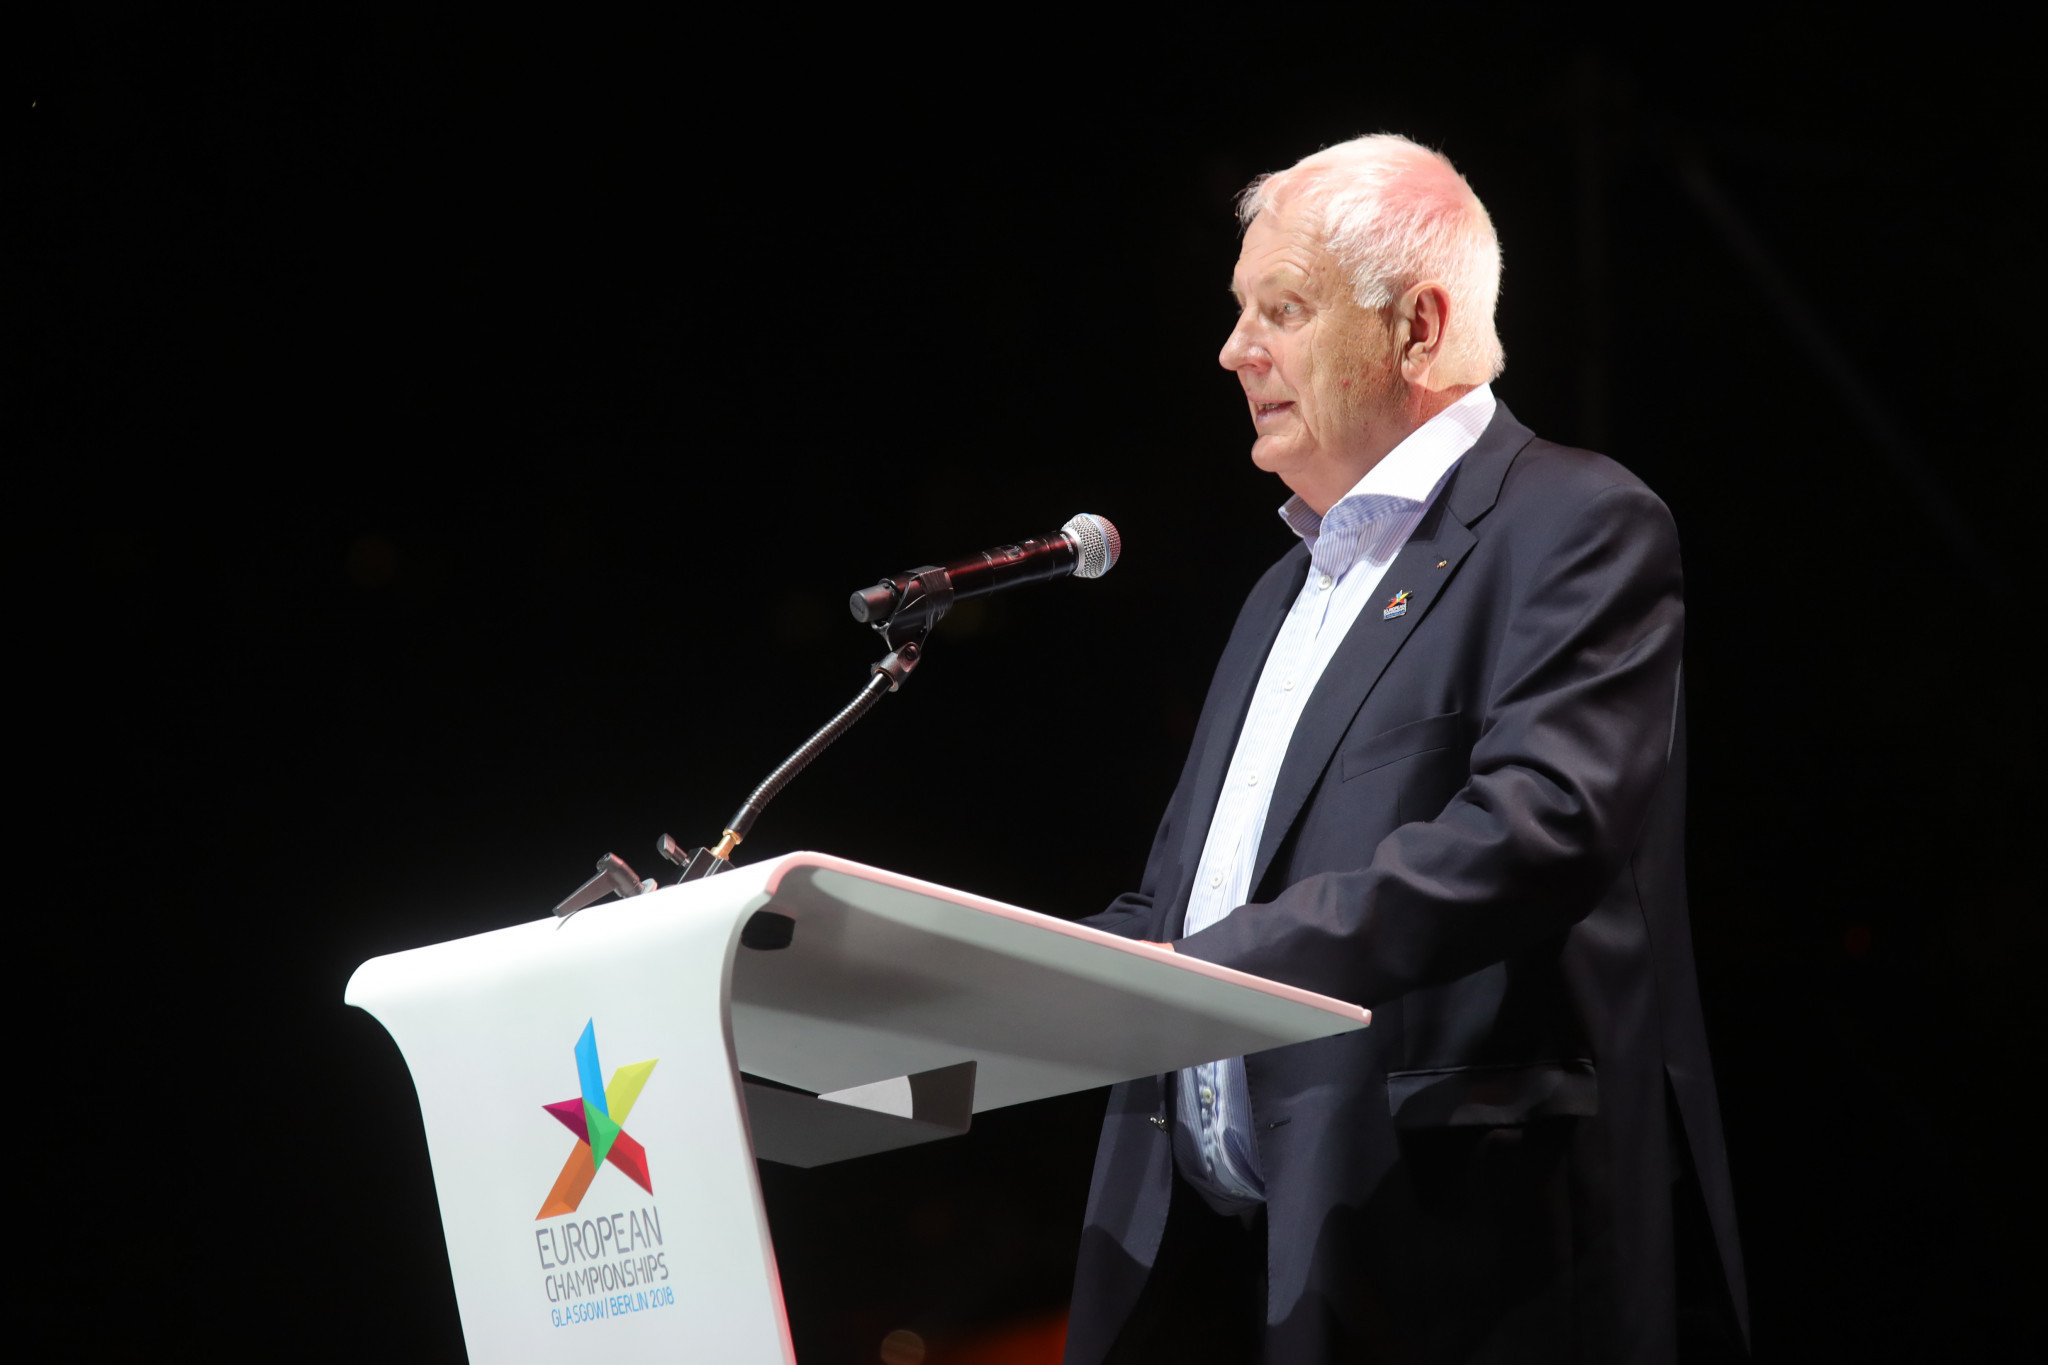 Svein Arne Hansen will stand unopposed for a second term as President when the European Athletics Congress meets in April ©Getty Images